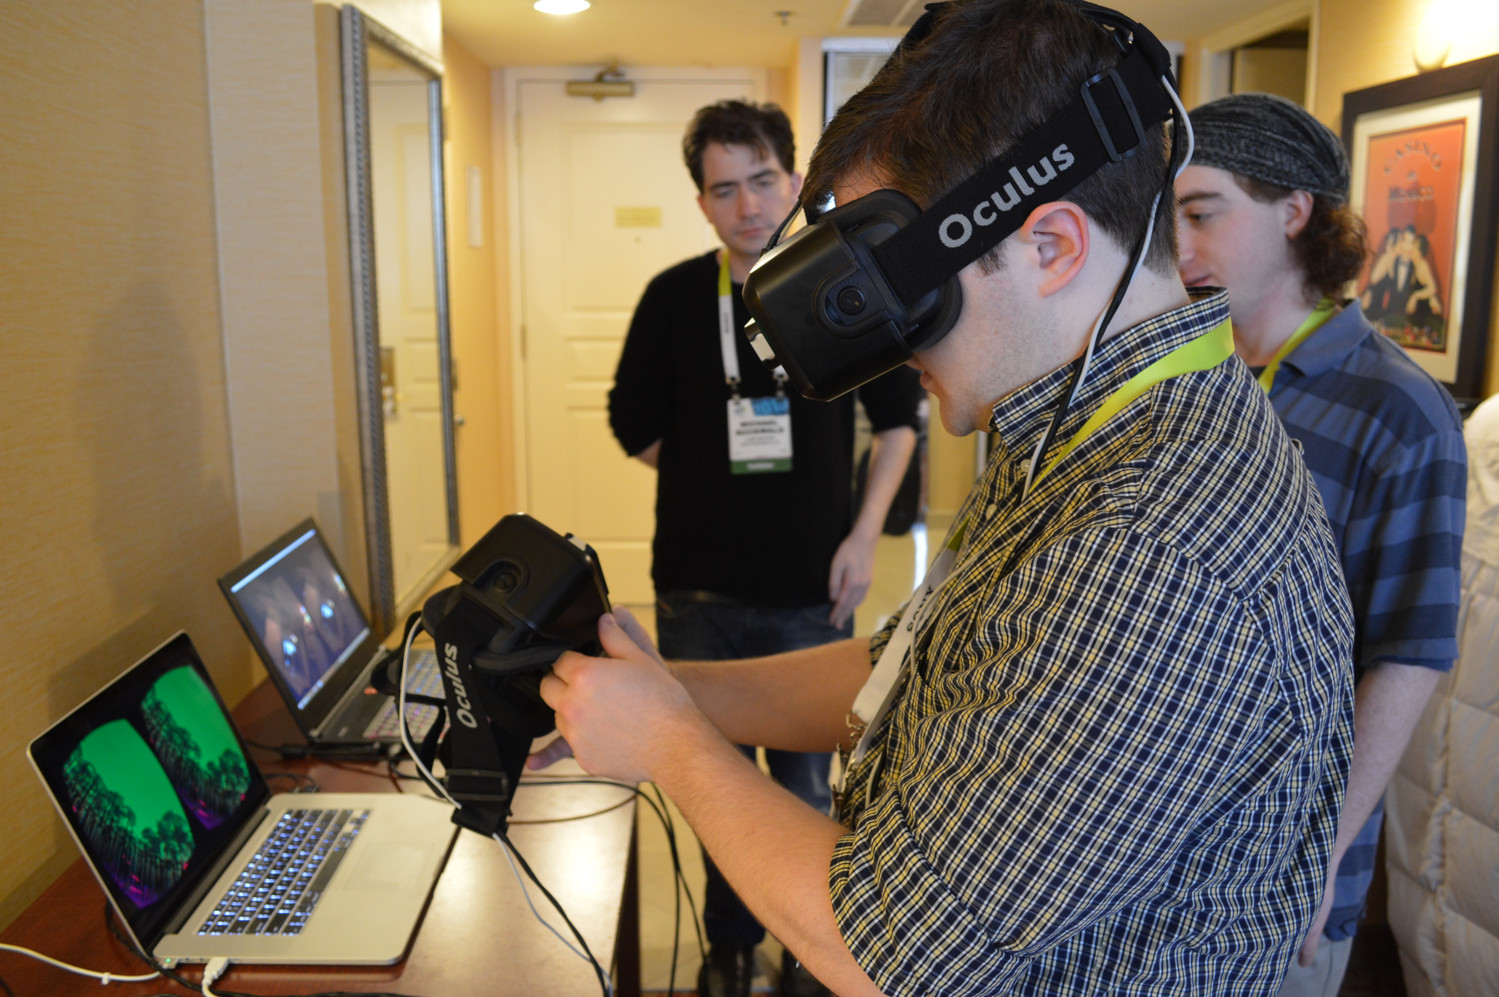 CES 2015: Leap Motion Co-Founders Talk 'Dragonfly' Made-for-VR Motion Input Camera